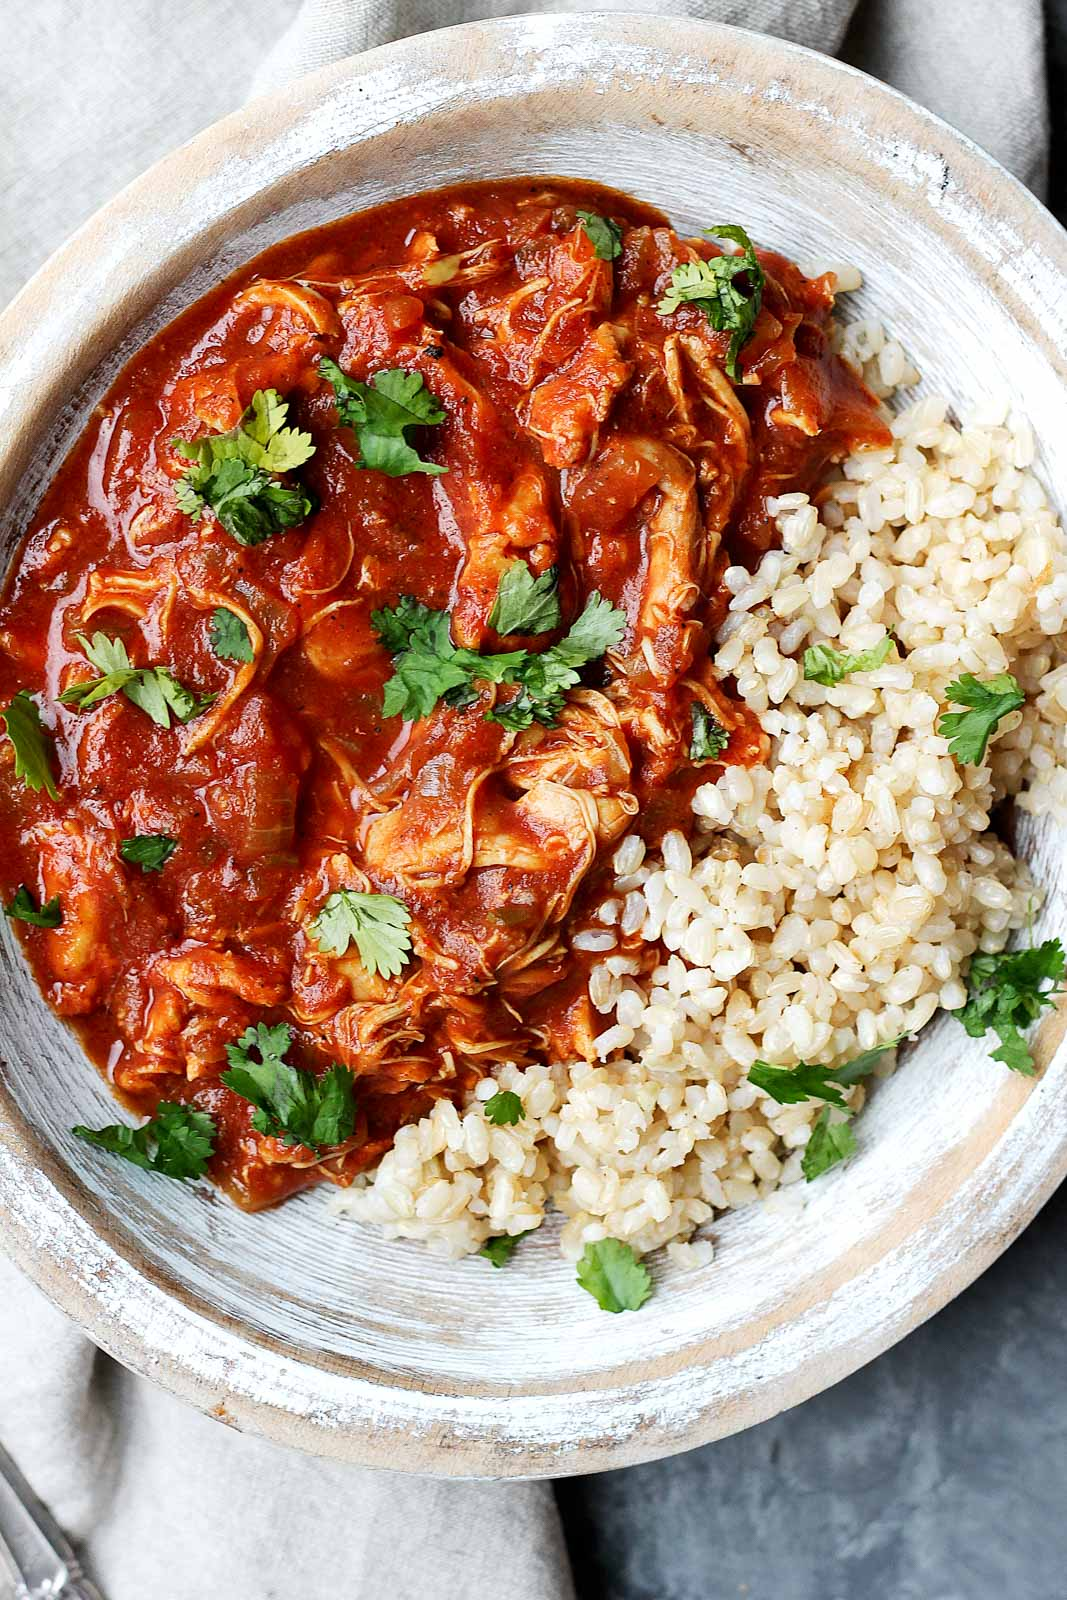 Healthy Slow Cooker Chicken Tikka Masala from ambitiouskitchen.com on foodiecrush.com